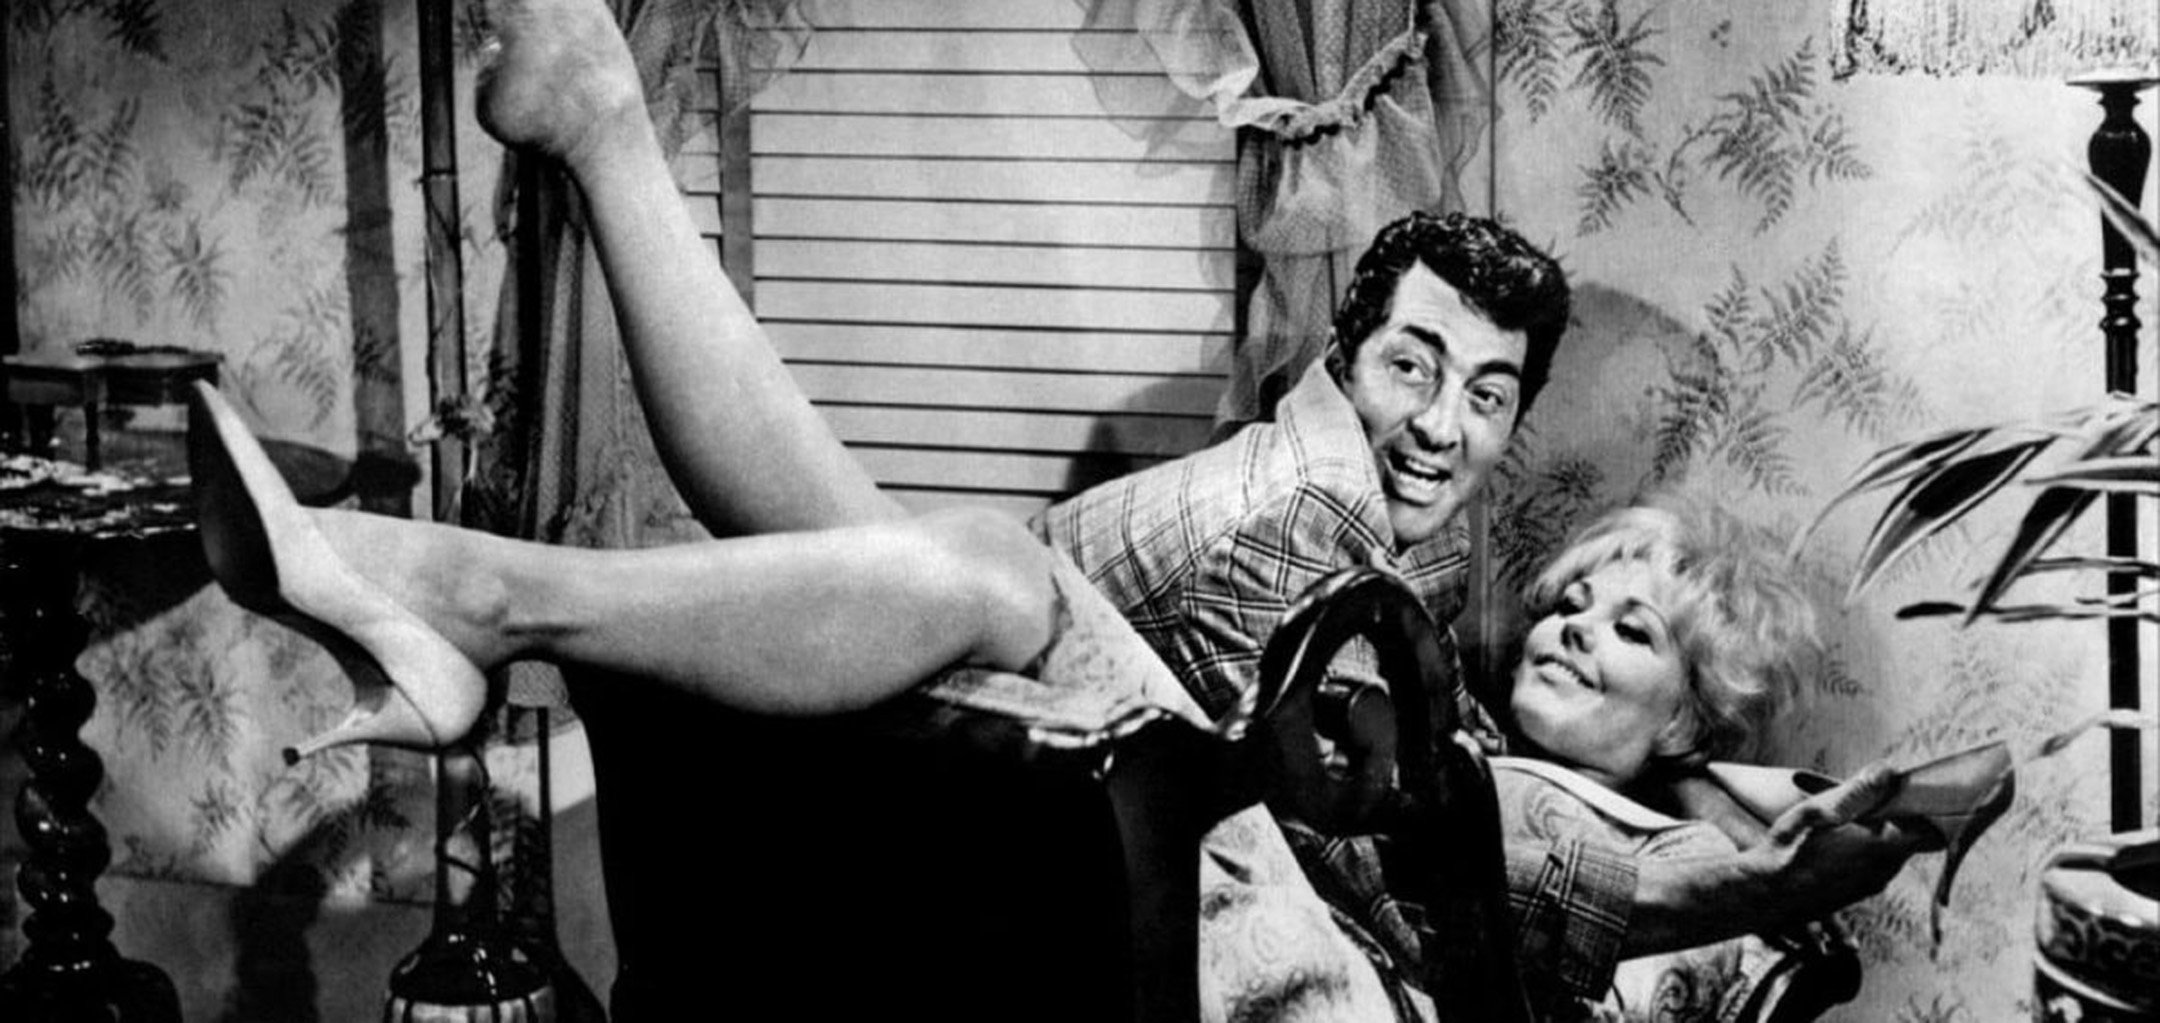 Dean Martin and Kim Novak in a wild embrace on the couch in a still from Kiss Me, Stupid (1964)